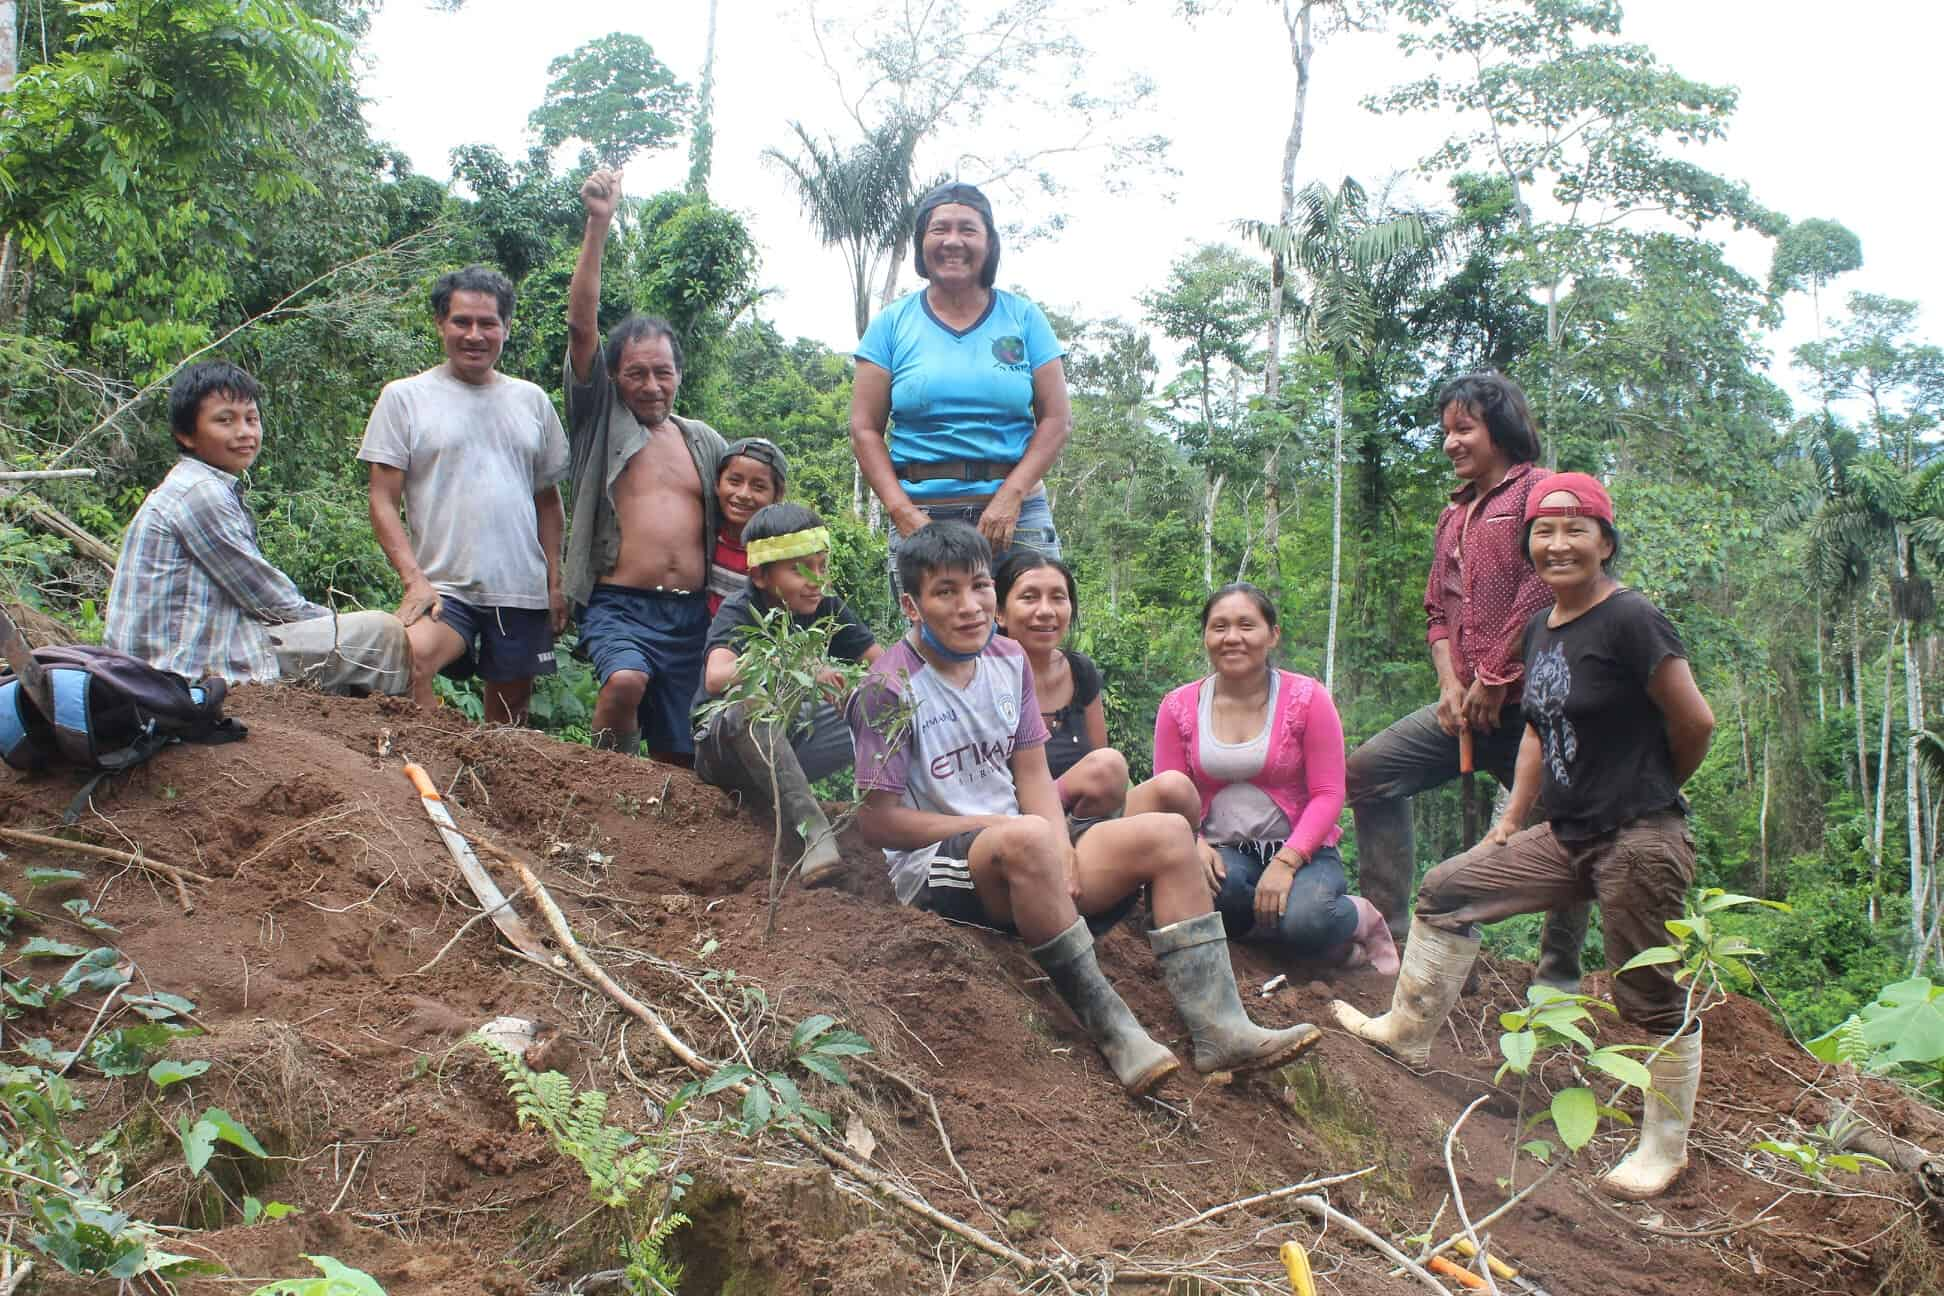 A group of Indigenous women and their families sit together on a small hill in the rainforest.